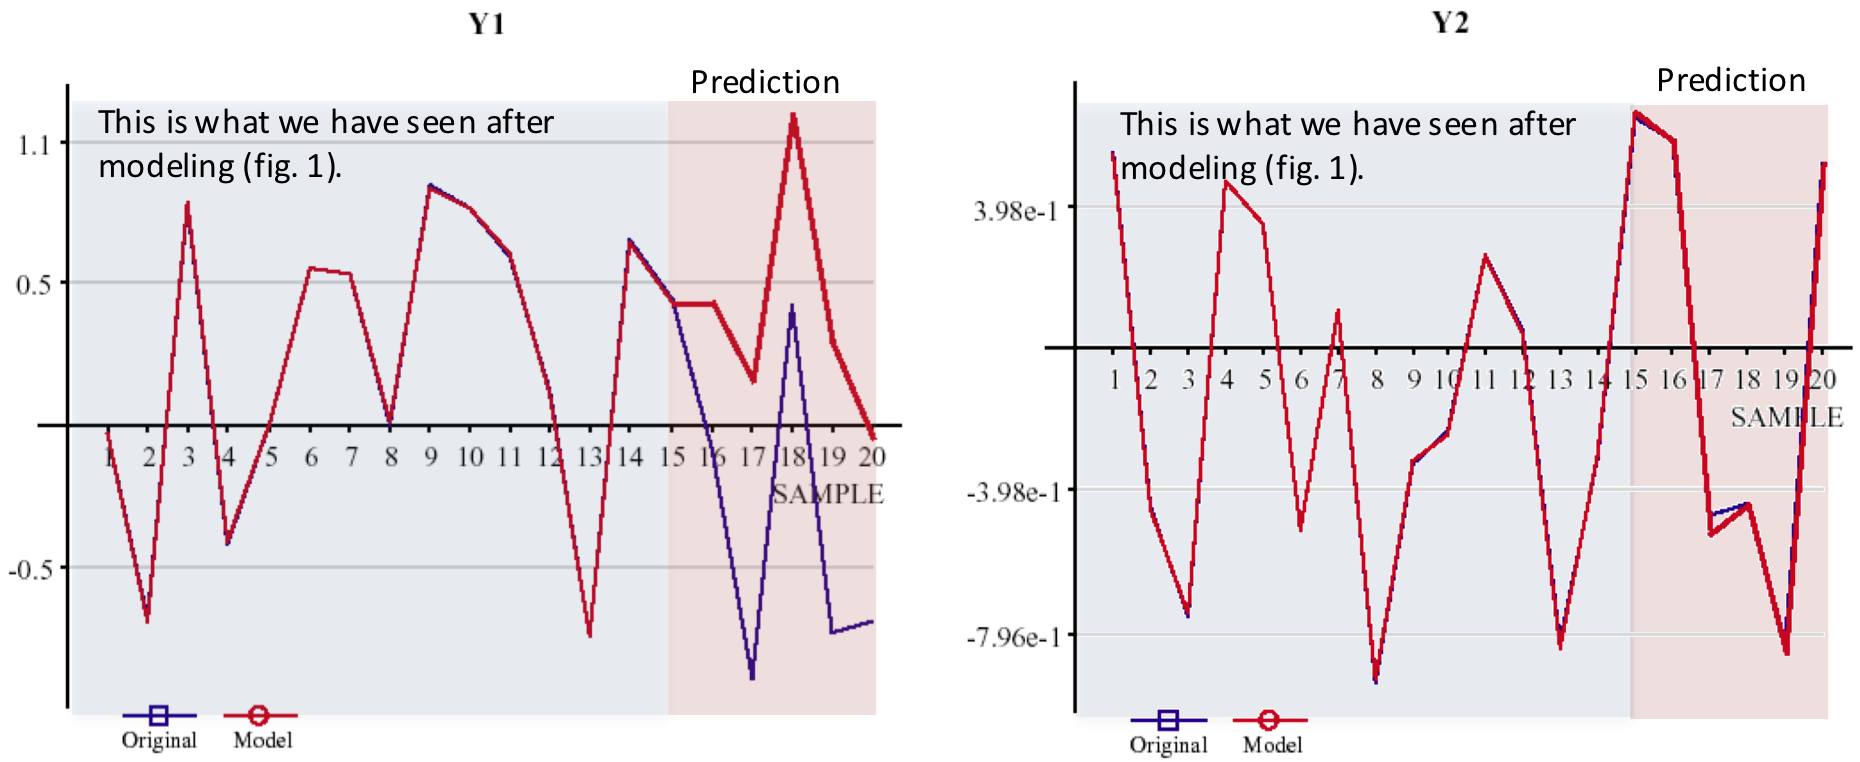 Prediction of two models